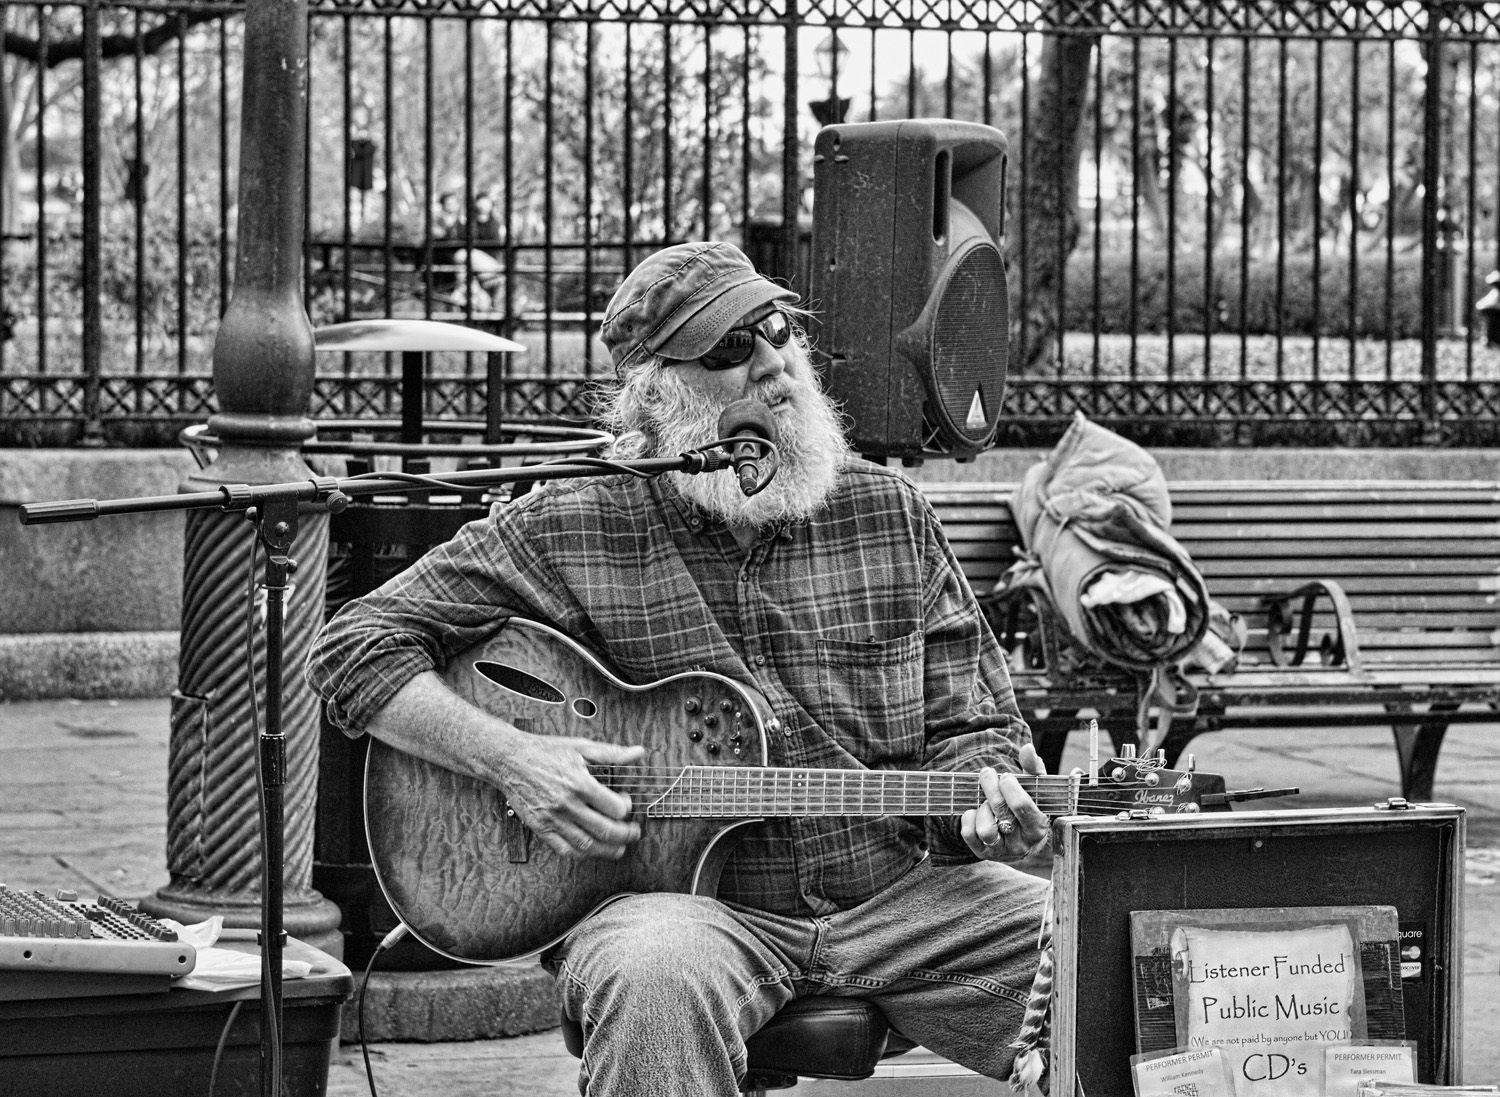 Jackson Square, in the historic French Quarter of New Orleans, is always a lively spot with street musicians, artists and wonderful...